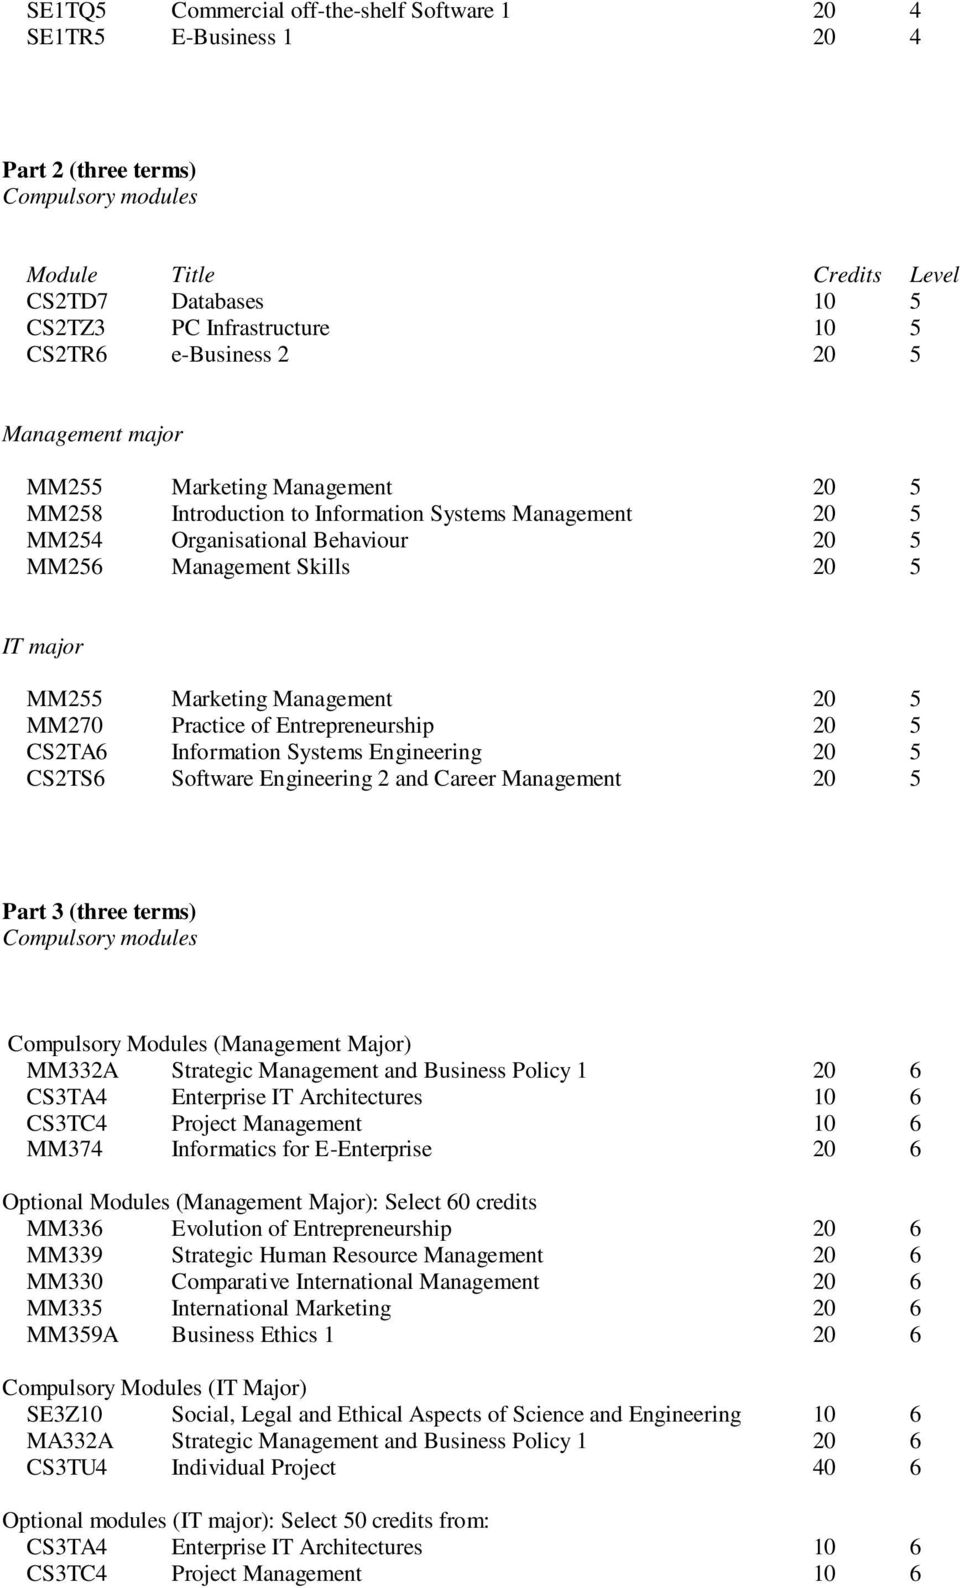 MM255 Marketing Management 20 5 MM270 Practice of Entrepreneurship 20 5 CS2TA6 Information Systems Engineering 20 5 CS2TS6 Software Engineering 2 and Career Management 20 5 Part 3 (three terms)